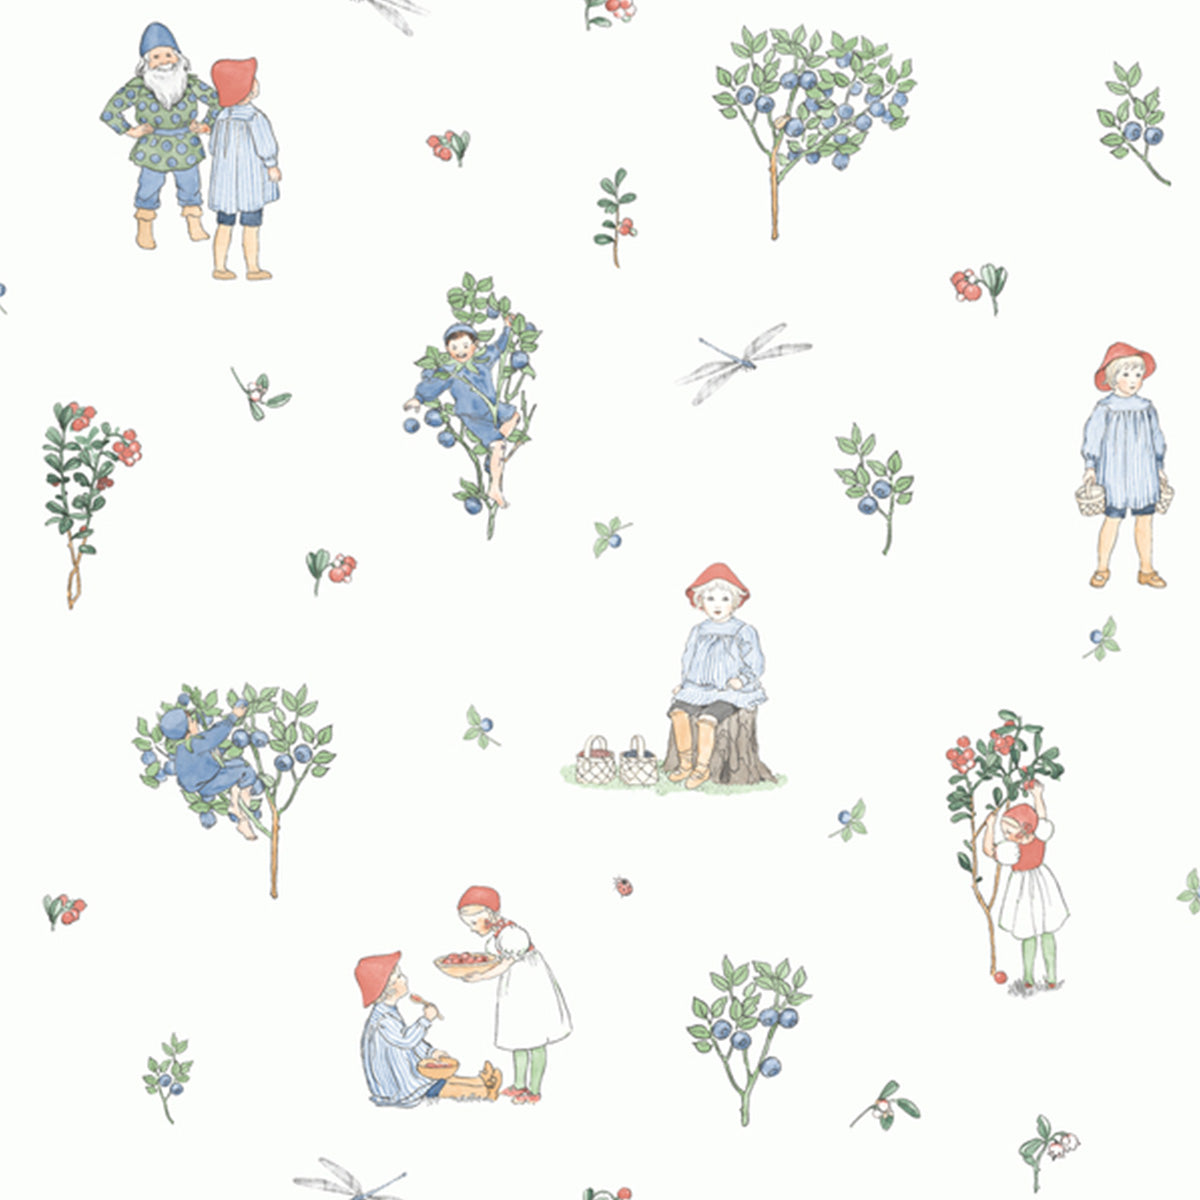 Boråstapeter Putte Wallpaper - 6234 - Scandinavian Designers Mini collection - Nordic Living | Slow Living - Concept Store | Wallpaper - Vintage Wallpaper - Interior Design - Putte